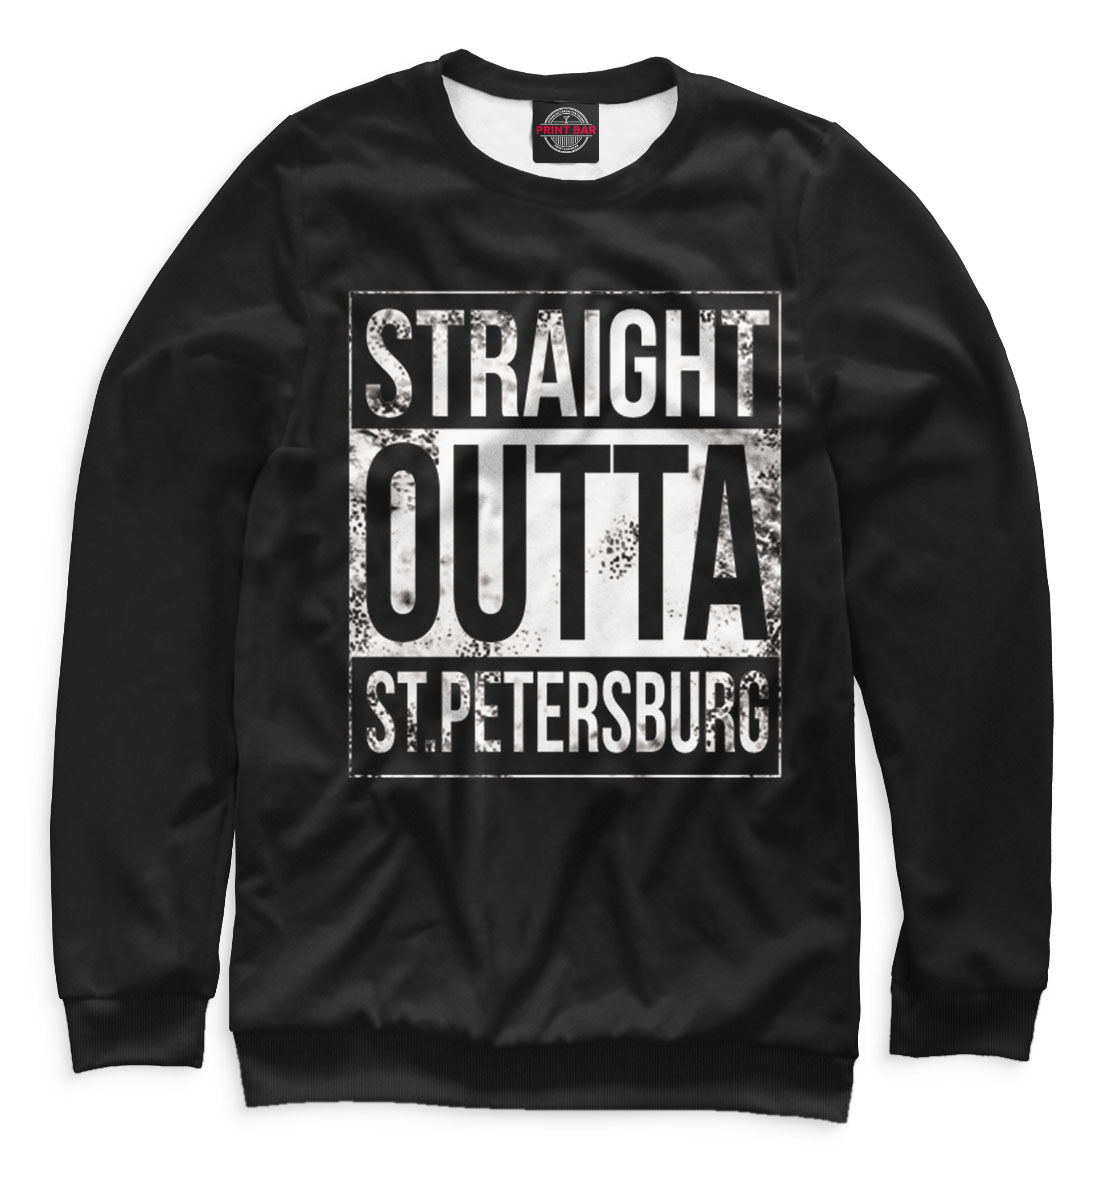 Straight Outta St. Petersburg follett k the man from st petersburg